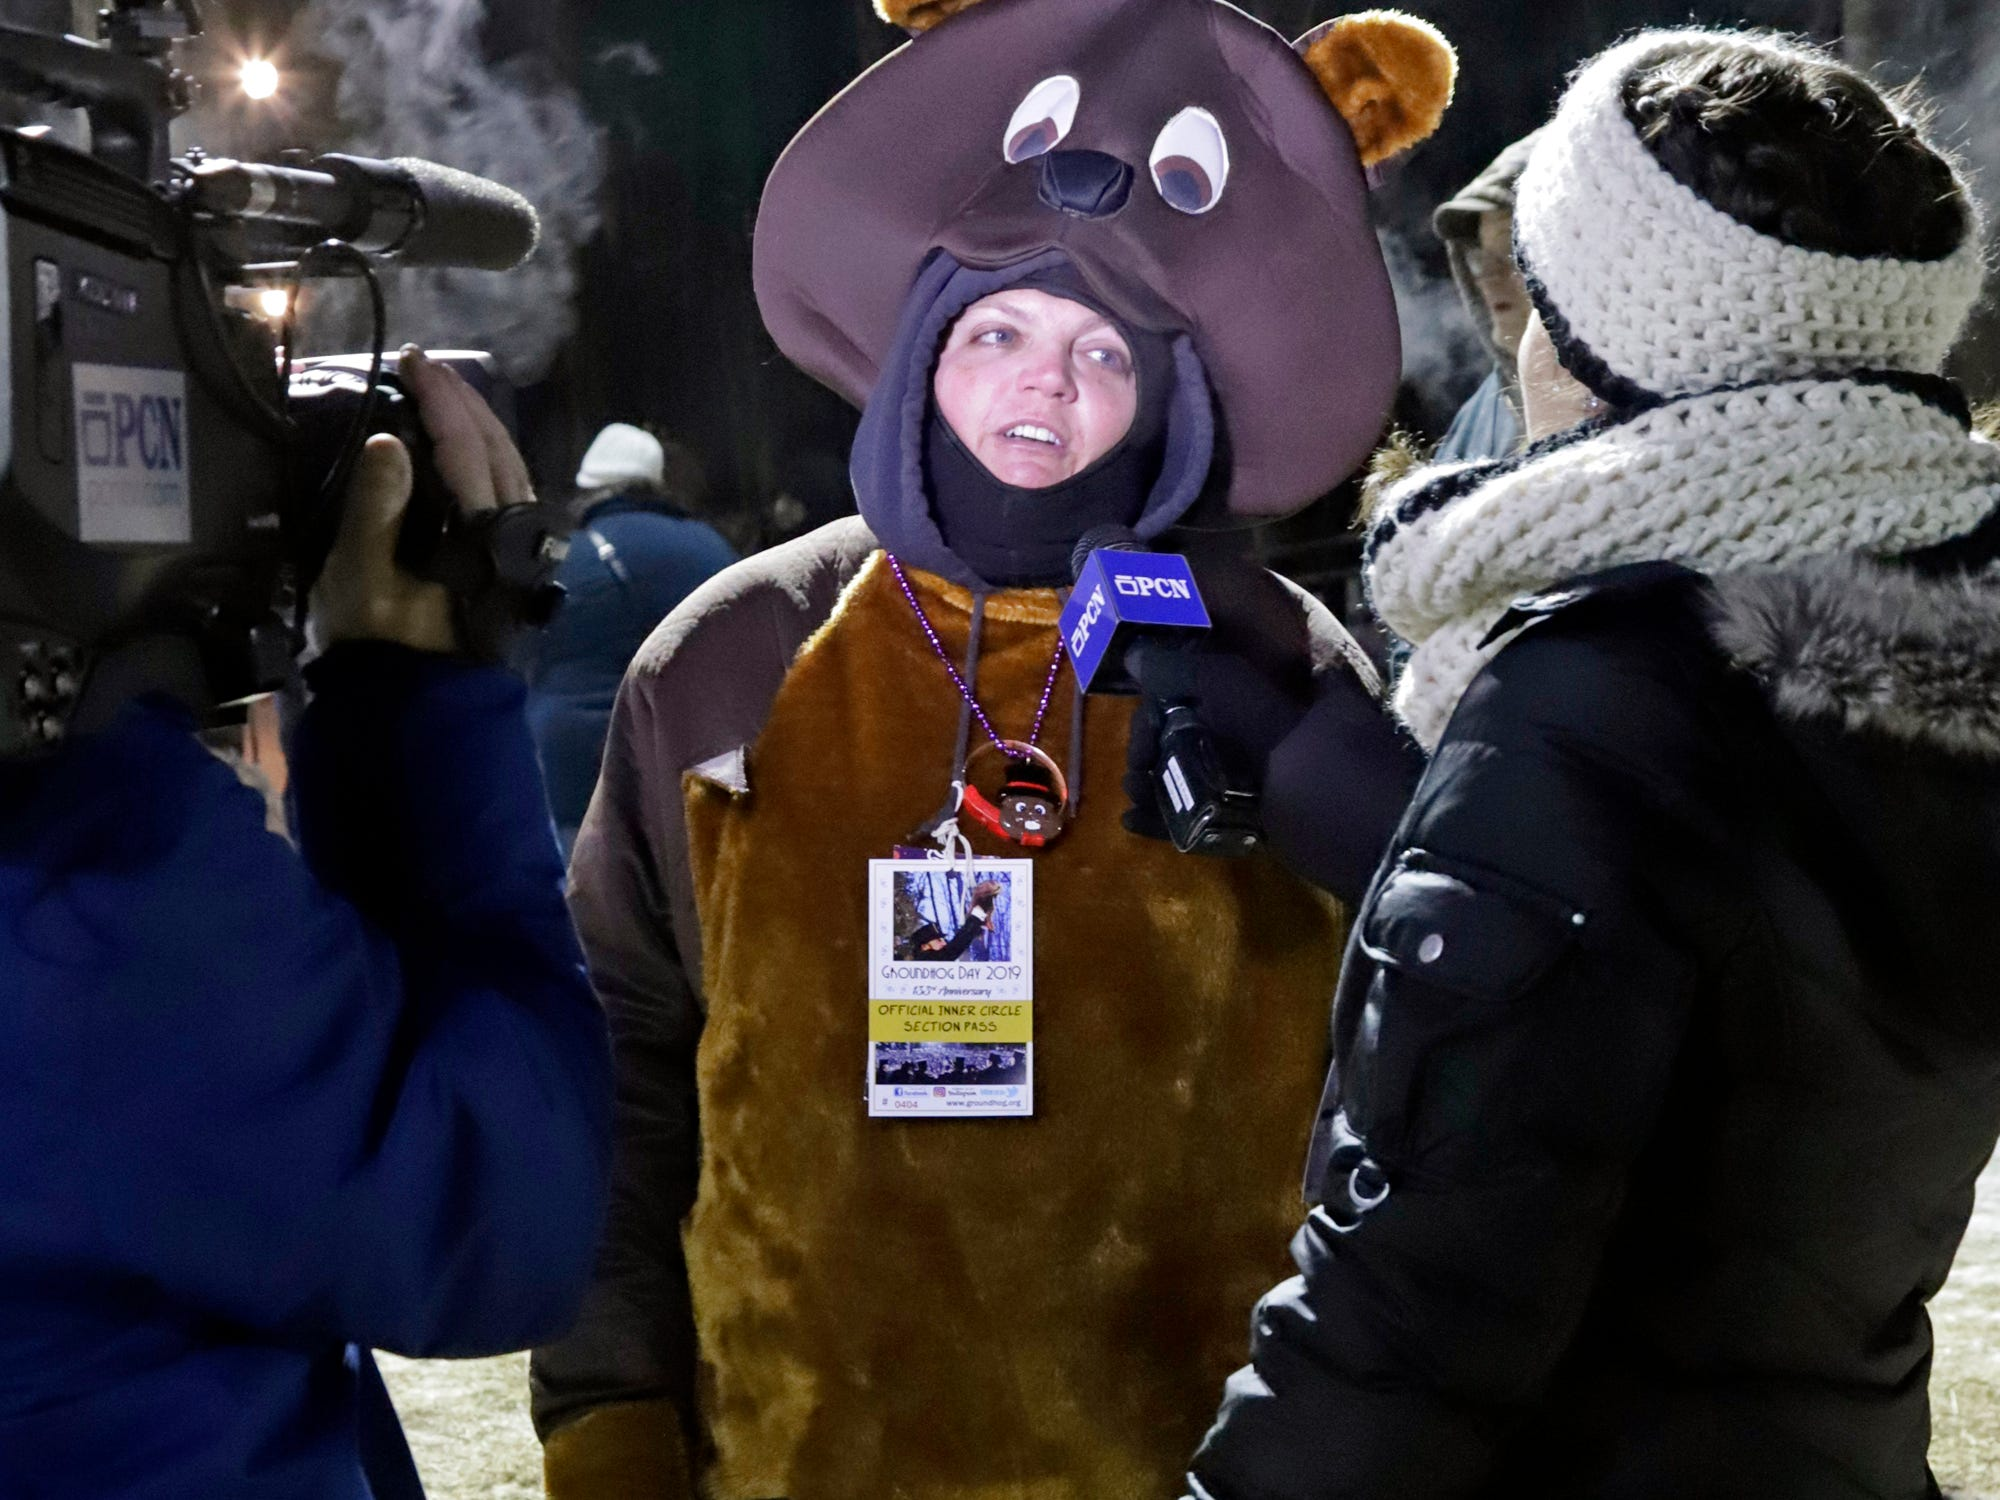 Katie Wolf of New Cumberland, Pa., center, wearing a groundhog costume is interviewed as she arrives for the 133rd Groundhog Day celebration on Gobbler's Knob in Punxsutawney, Pa. Saturday, Feb. 2, 2019. (AP Photo/Gene J. Puskar)